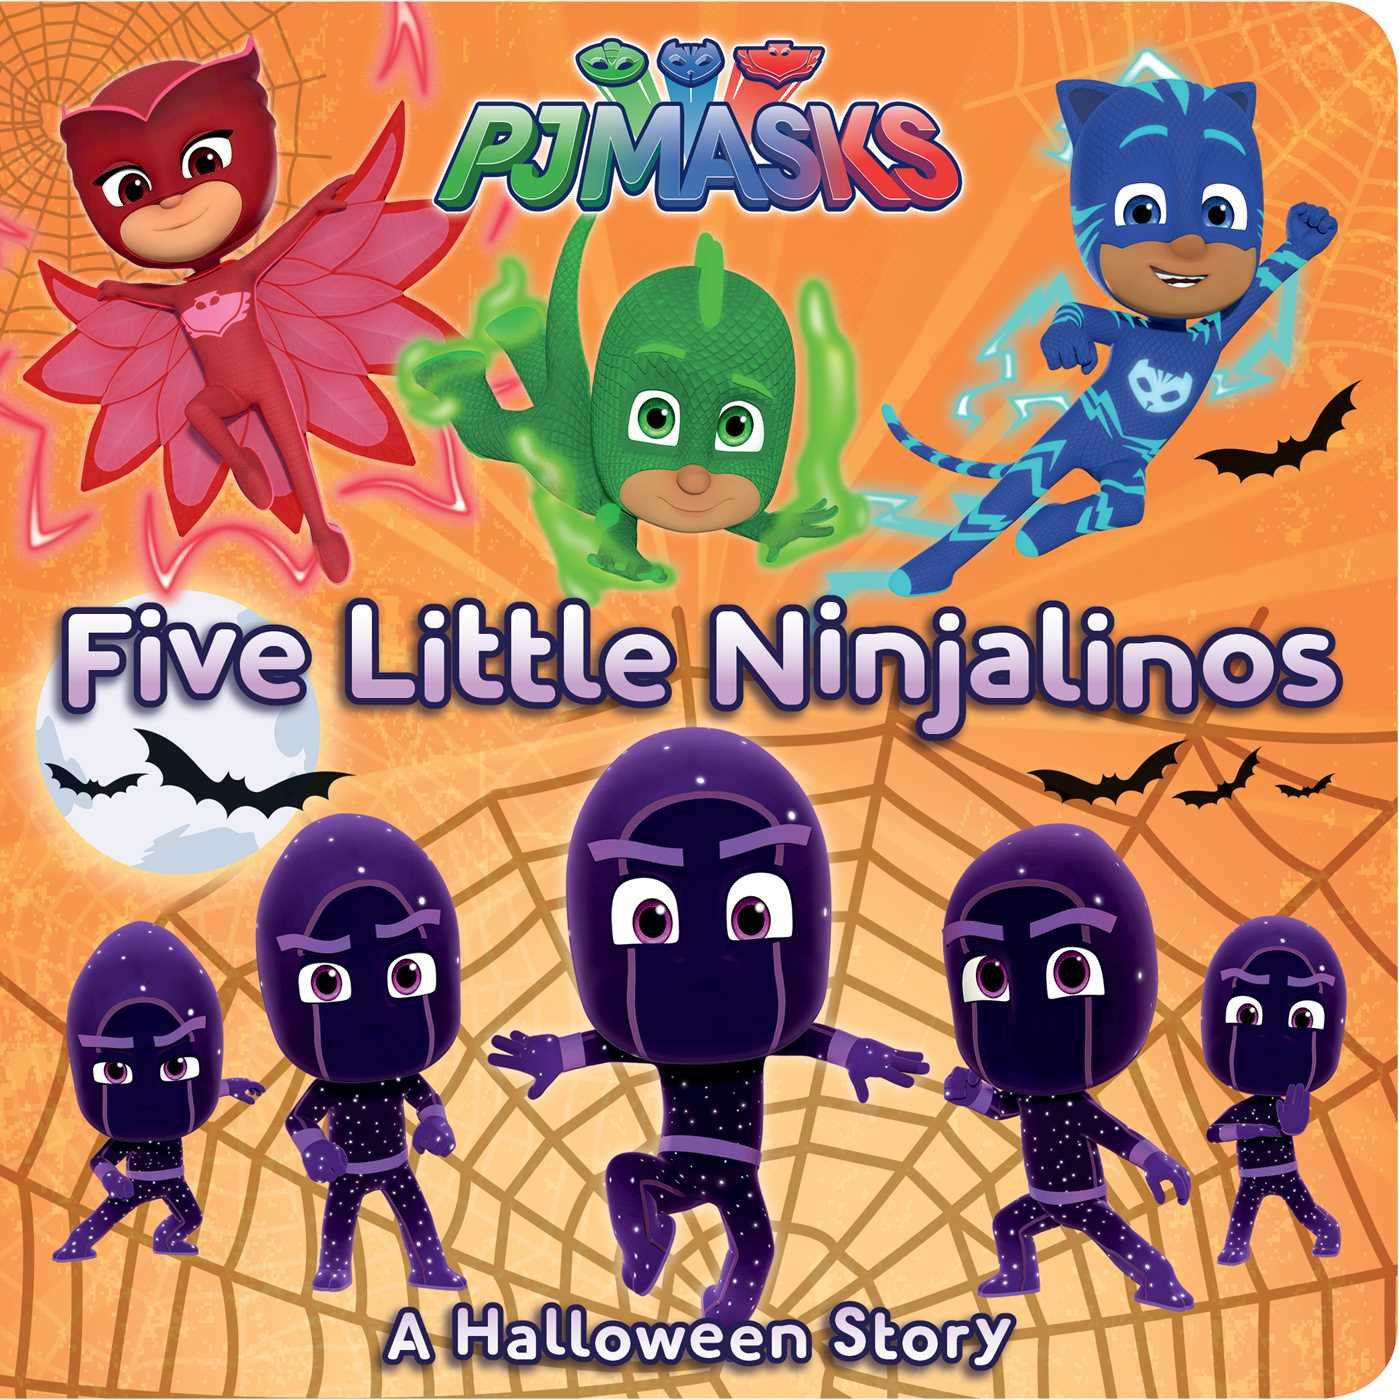 Amazon.com: Five Little Ninjalinos: A Halloween Story (PJ Masks) (9781534417830): Tina Gallo, Jason Fruchter: Books